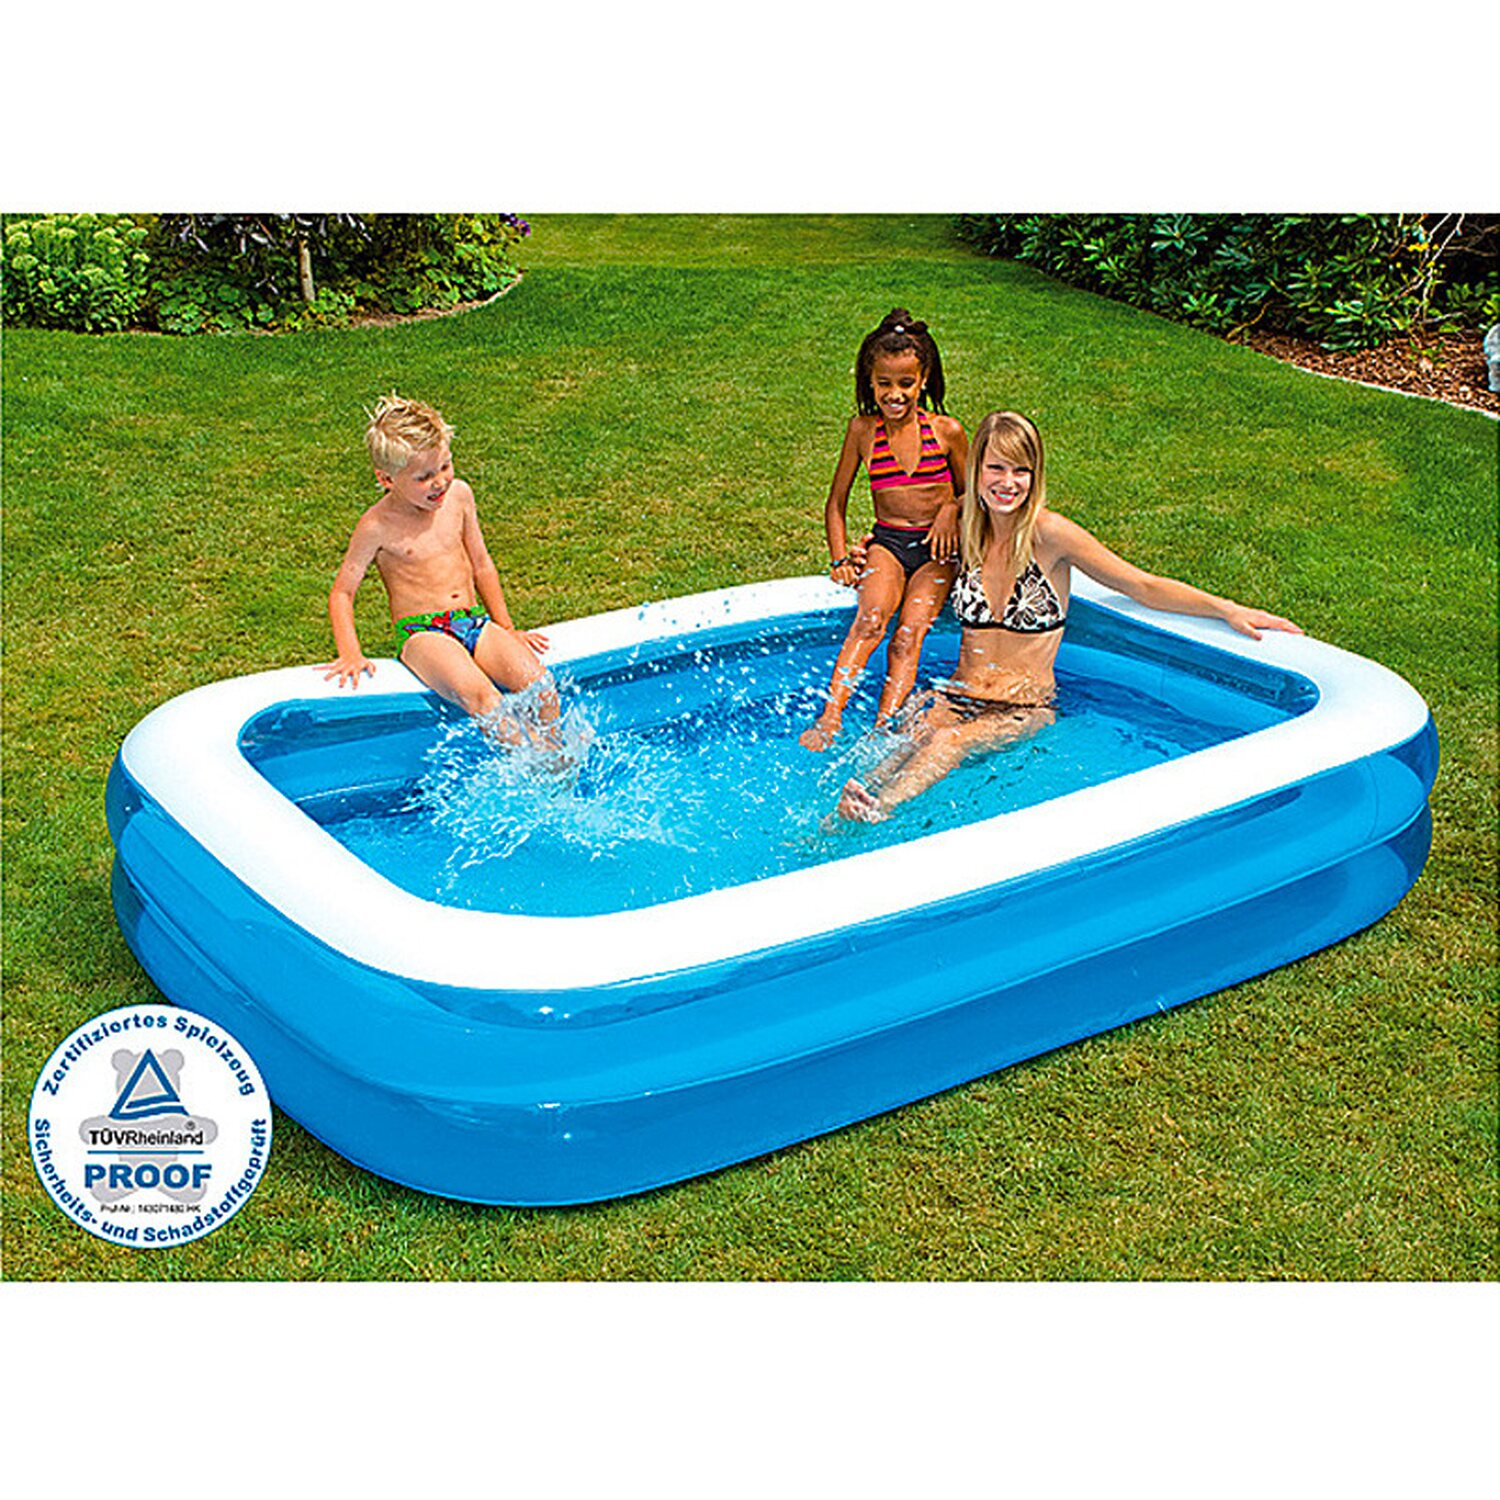 Ihr europool shop for Obi easy pool